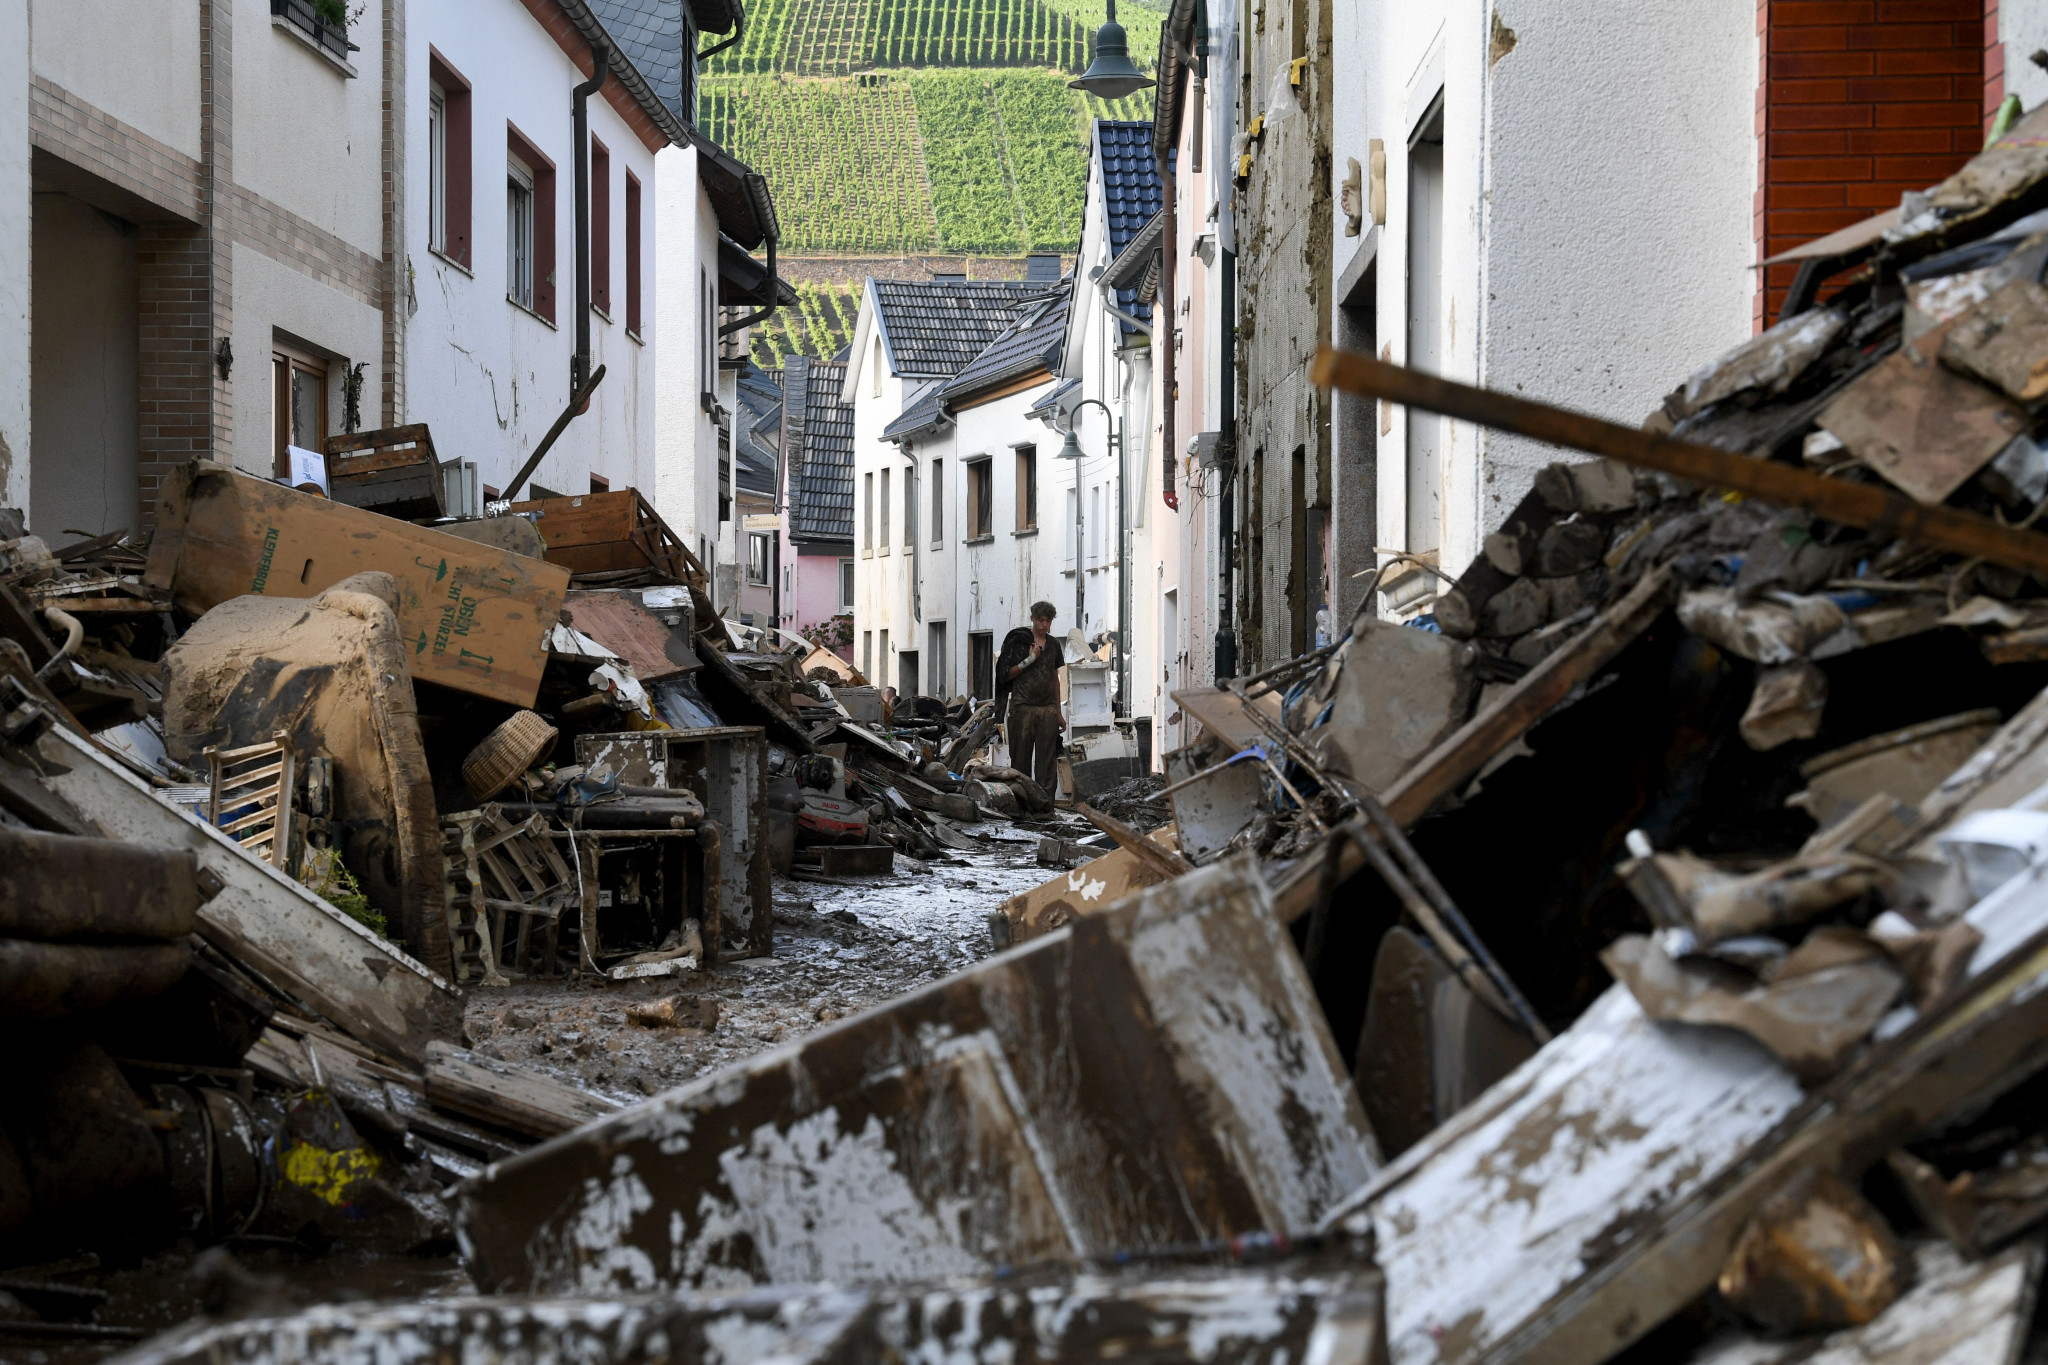 The floods are Germany's worst natural disaster since 1962 ©Getty Images